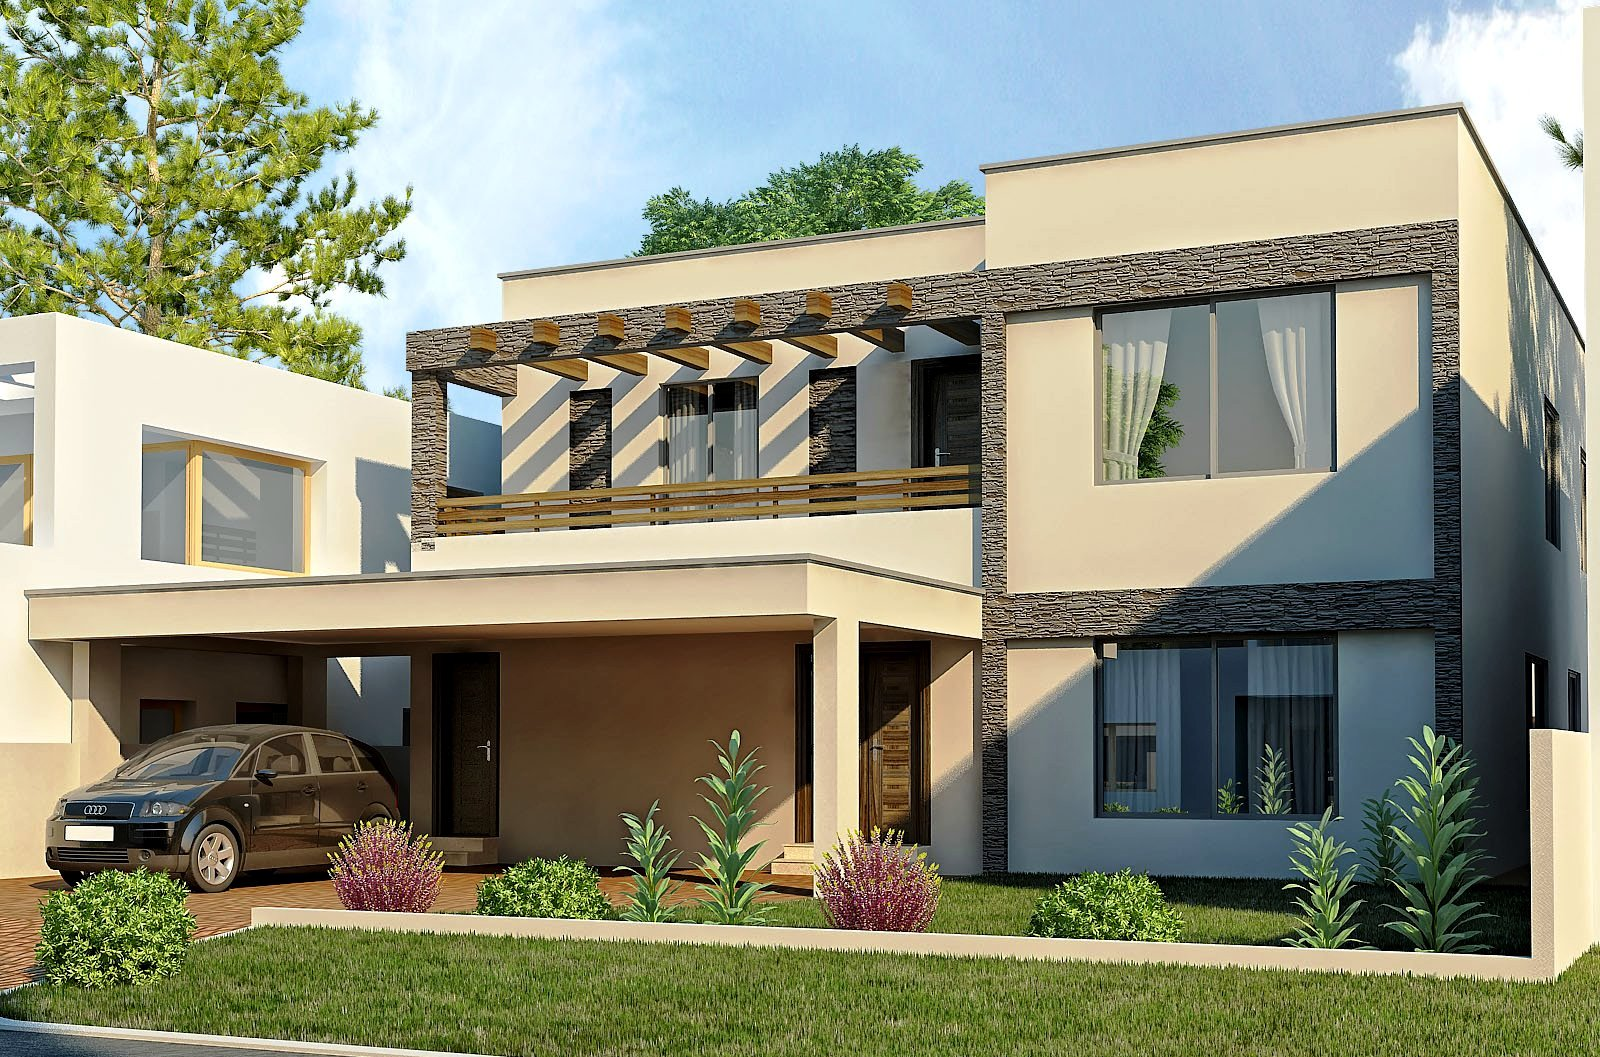 New home designs latest modern homes exterior designs views for Modern exterior wall design